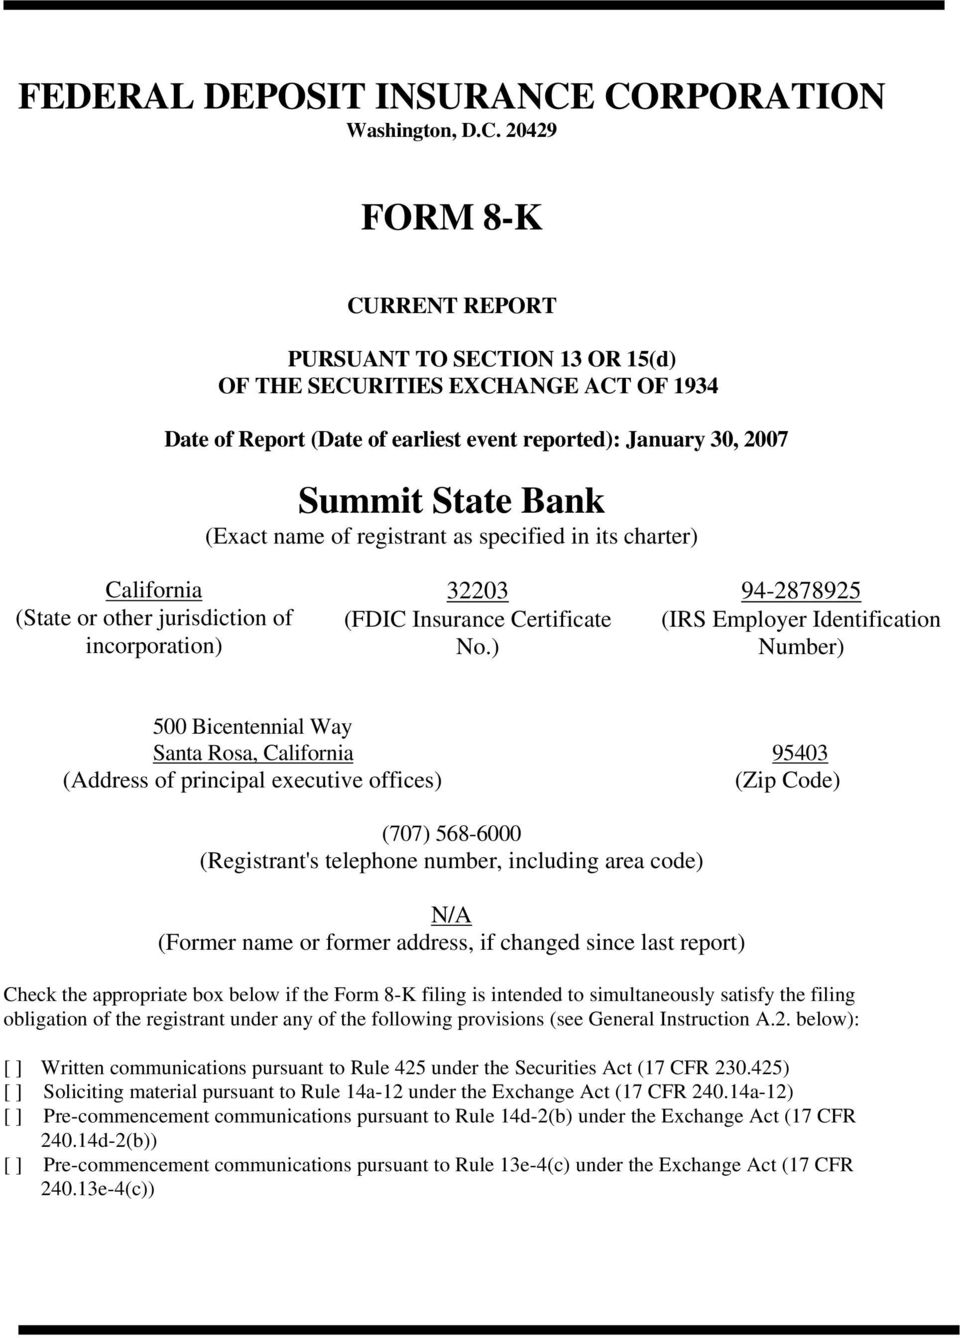 Summit State Bank (Exact name of registrant as specified in its charter) California (State or other jurisdiction of incorporation) 32203 (FDIC Insurance Certificate No.